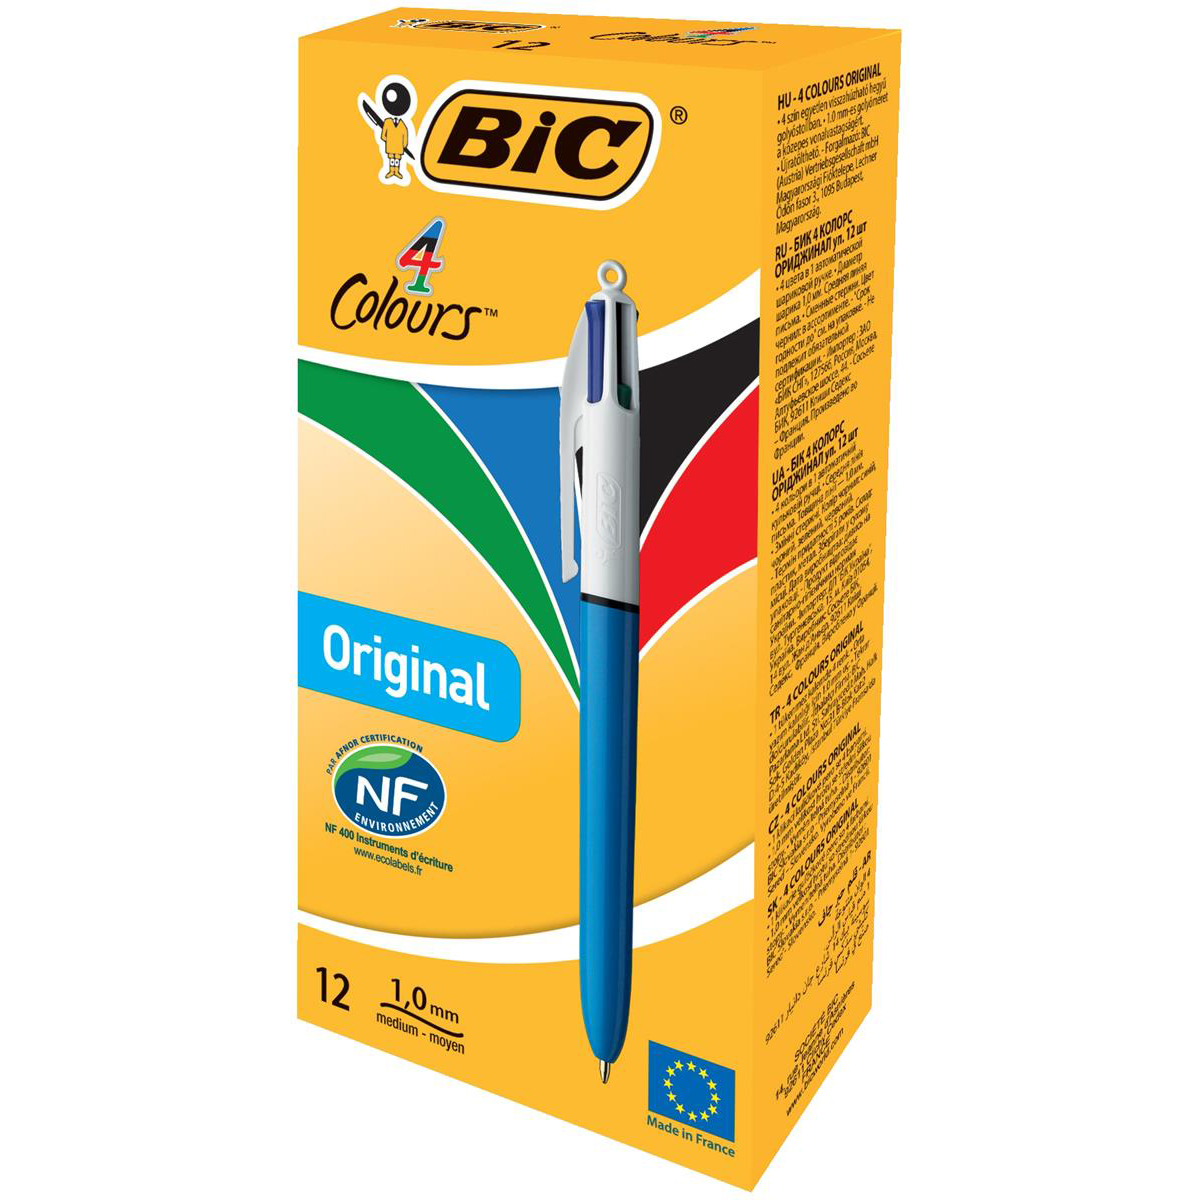 Bic 4-Colour Ball Pen Blue Black Red Green Ref 802077/801867 [Pack 12] [2 For 1] Jul-Sep 2018